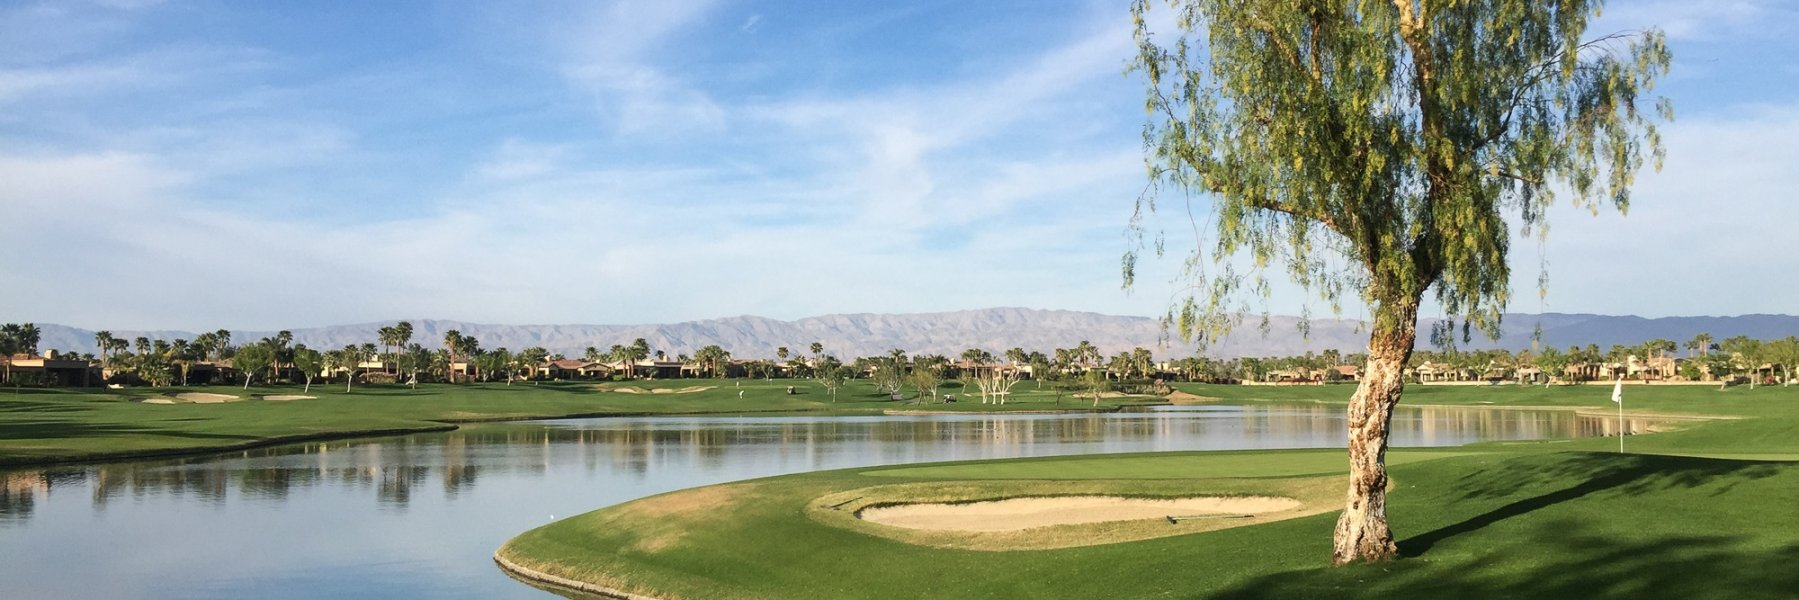 PGA West Legends is a community of homes in La Quinta California